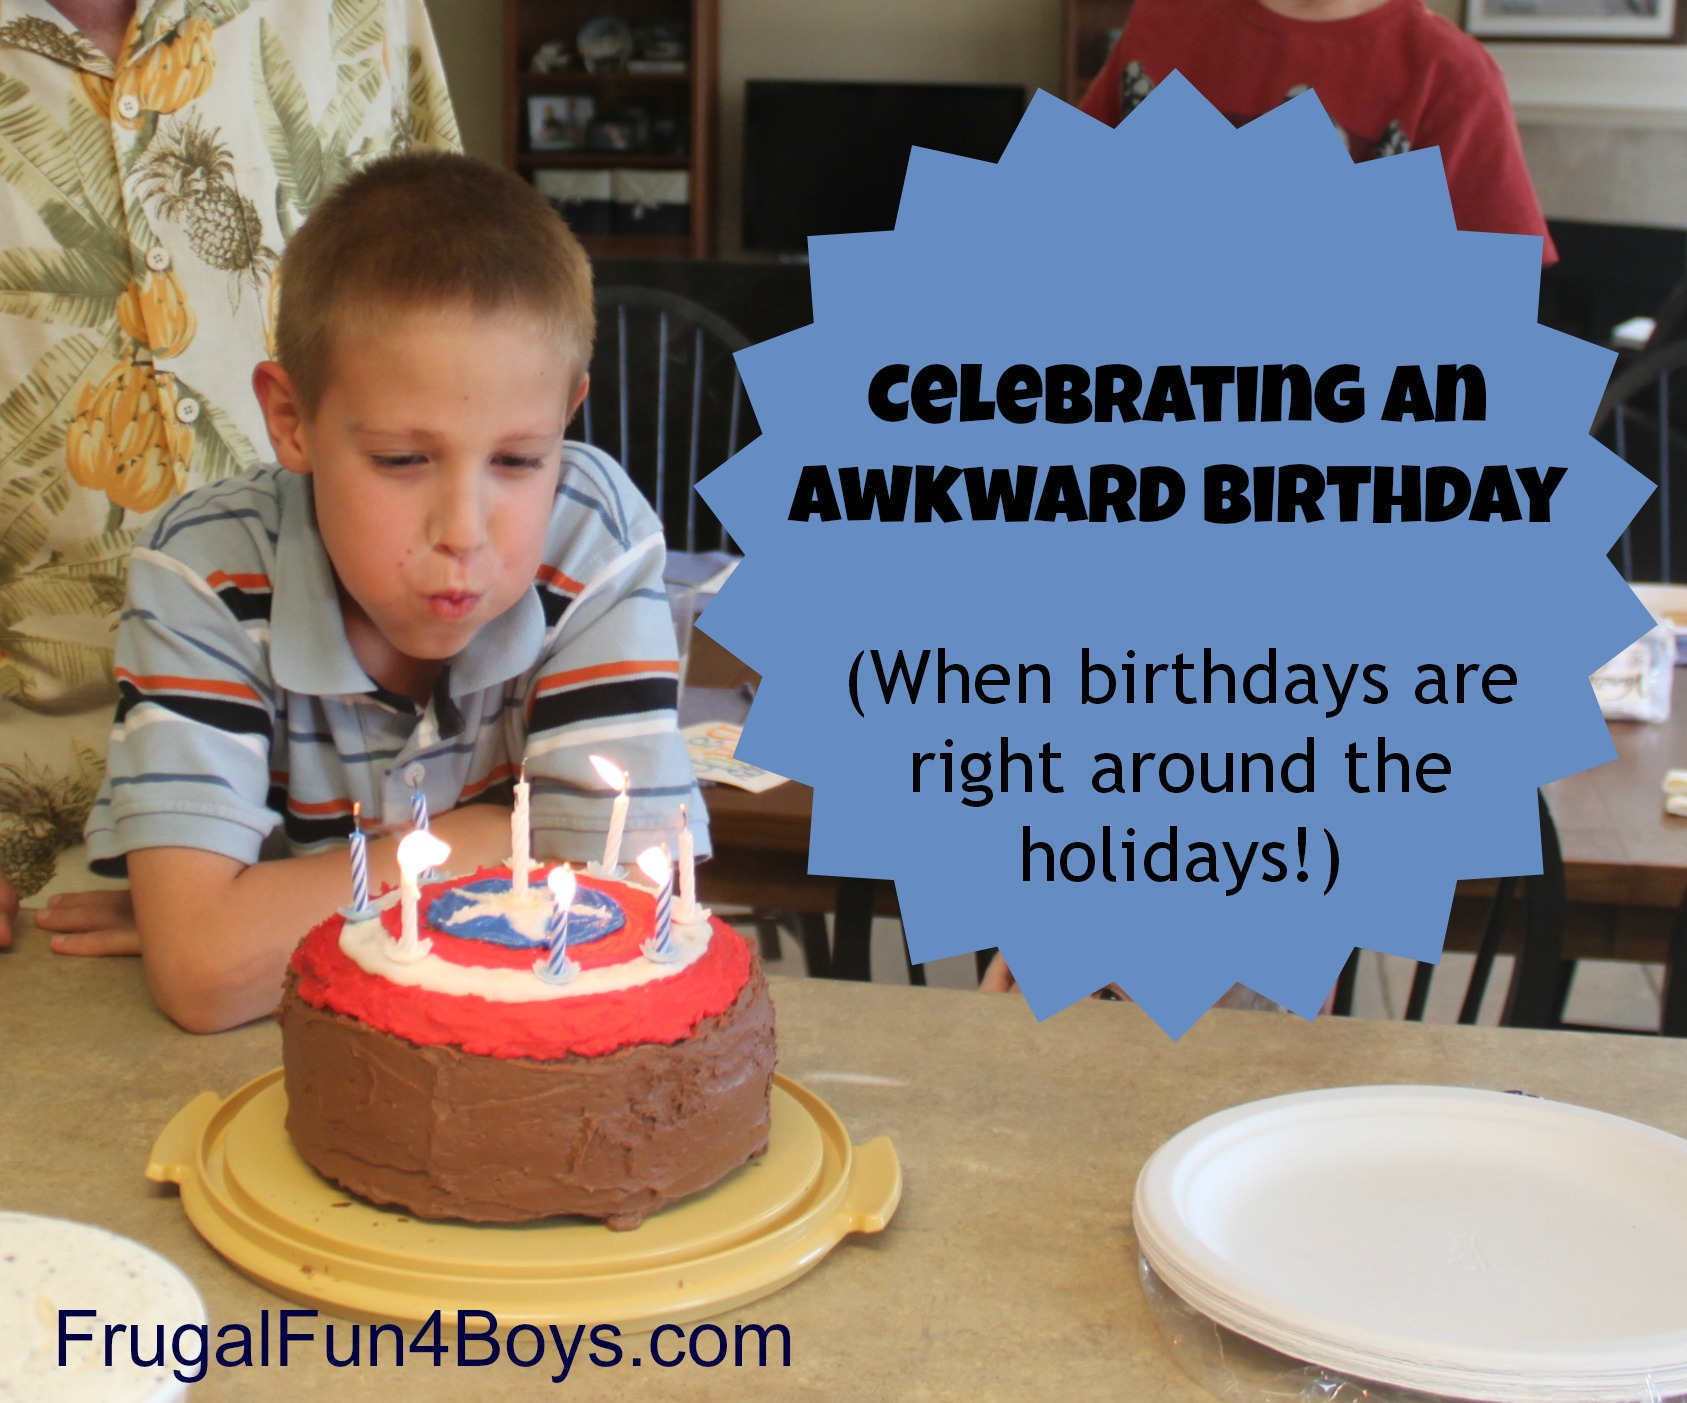 Celebrating an Awkward Birthday (When birthdays are right around the holidays!)